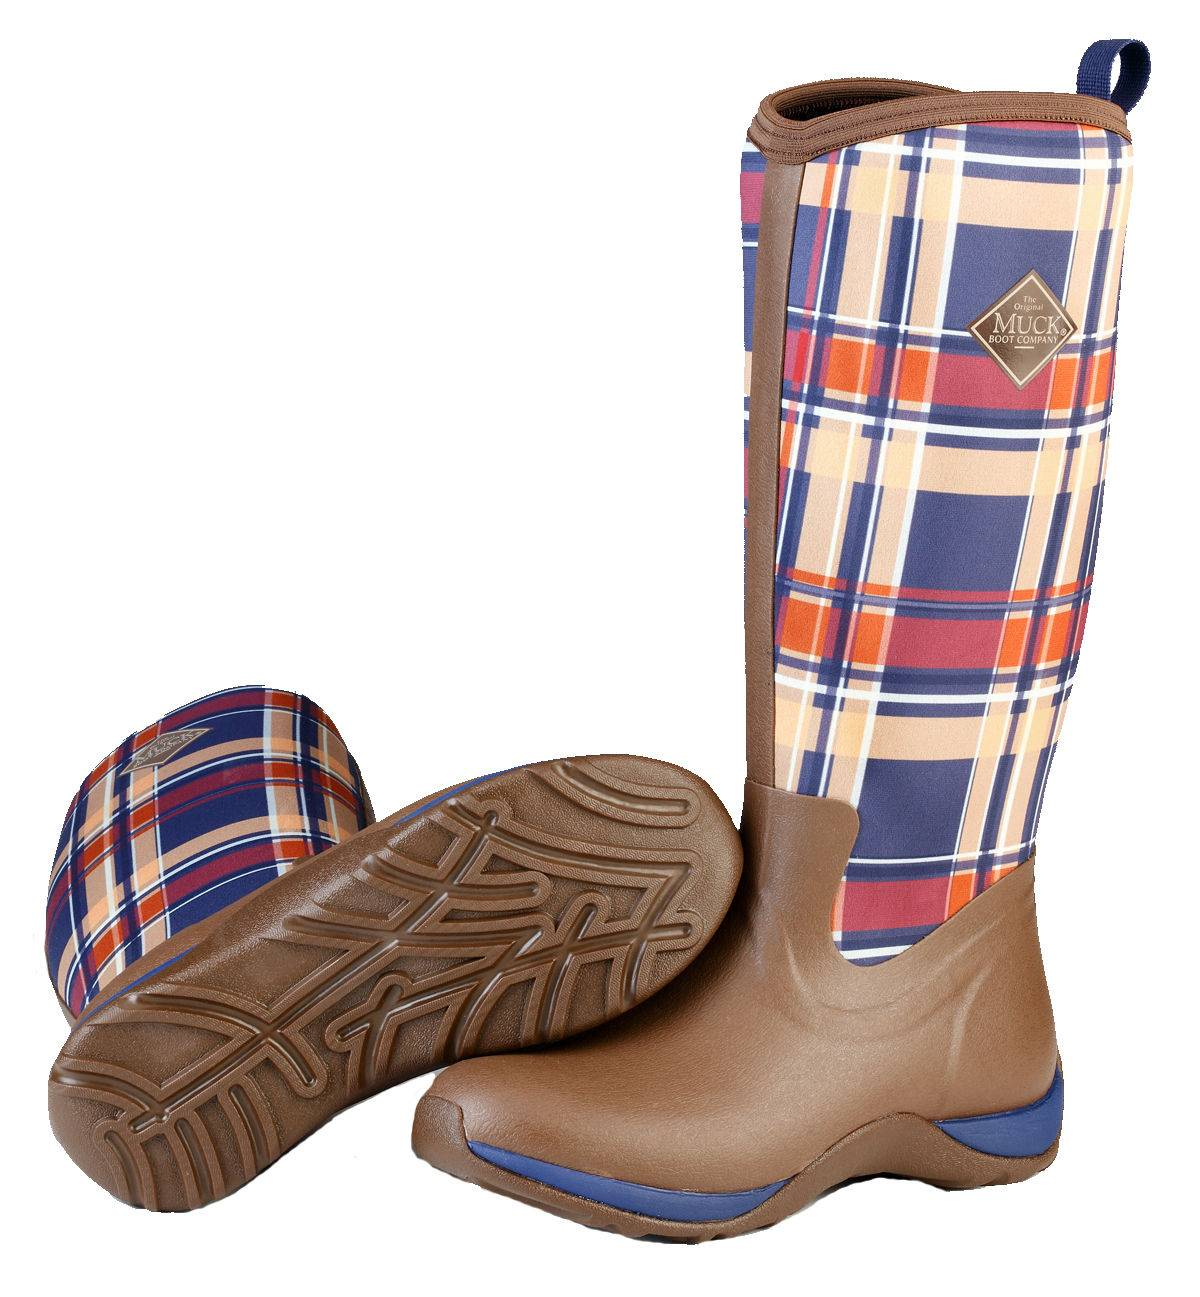 Muck Boots Arctic Adventure - Ladies - Brown/Navy Plaid